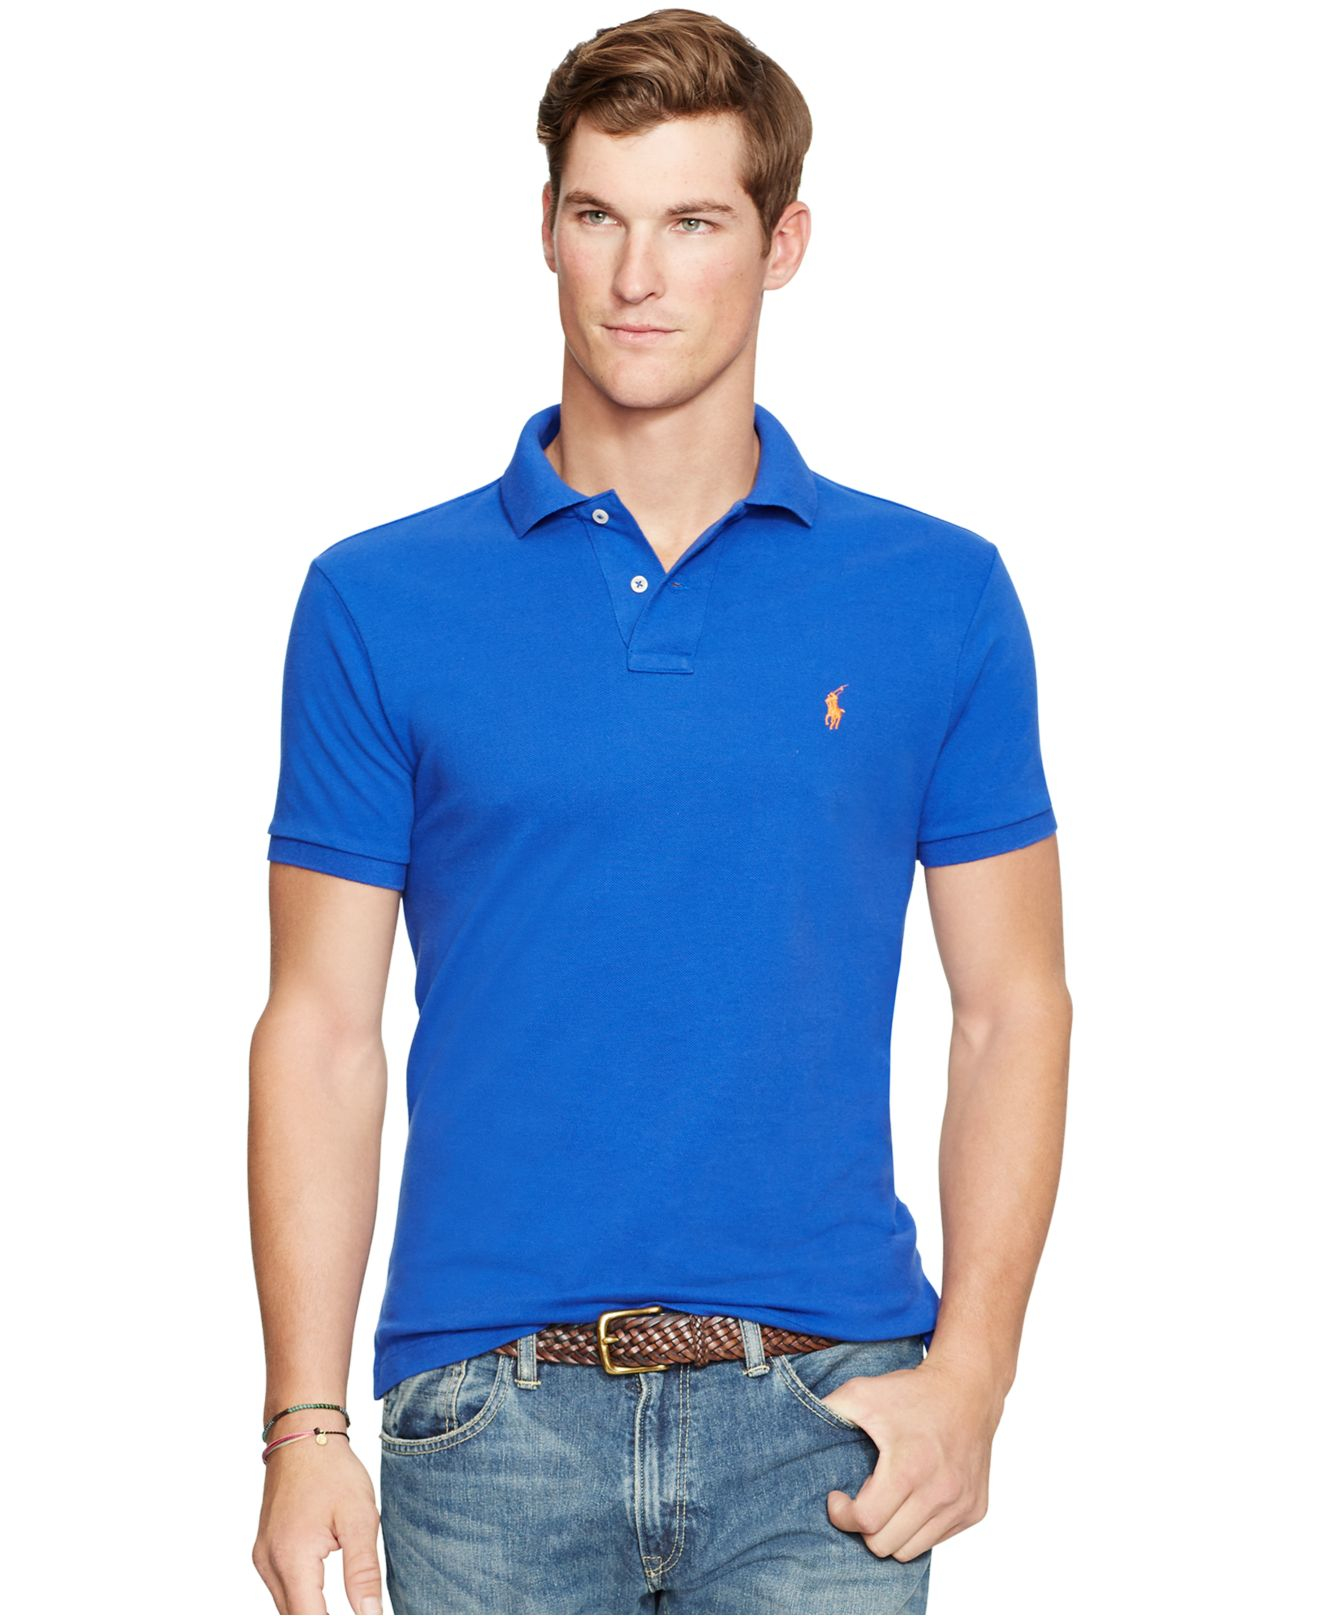 Lyst polo ralph lauren men 39 s custom fit mesh polo shirt for Ralph lauren custom fit mesh polo shirt